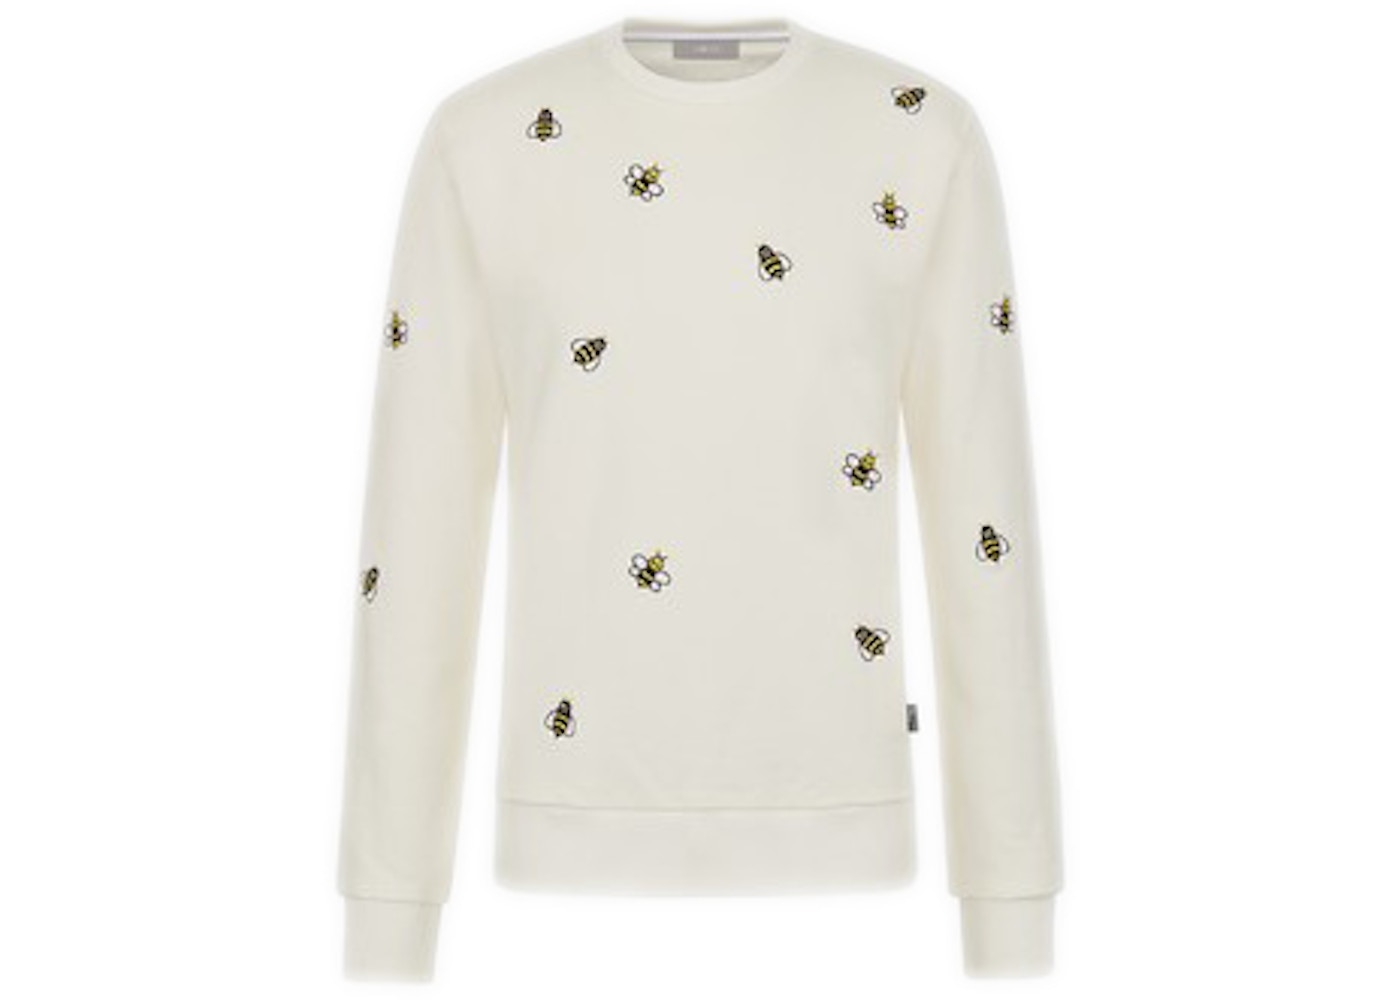 ba0ed23d Sell. or Ask. Size L. View All Bids. KAWS x Dior Embroidered Bees Crewneck  Sweatshirt White